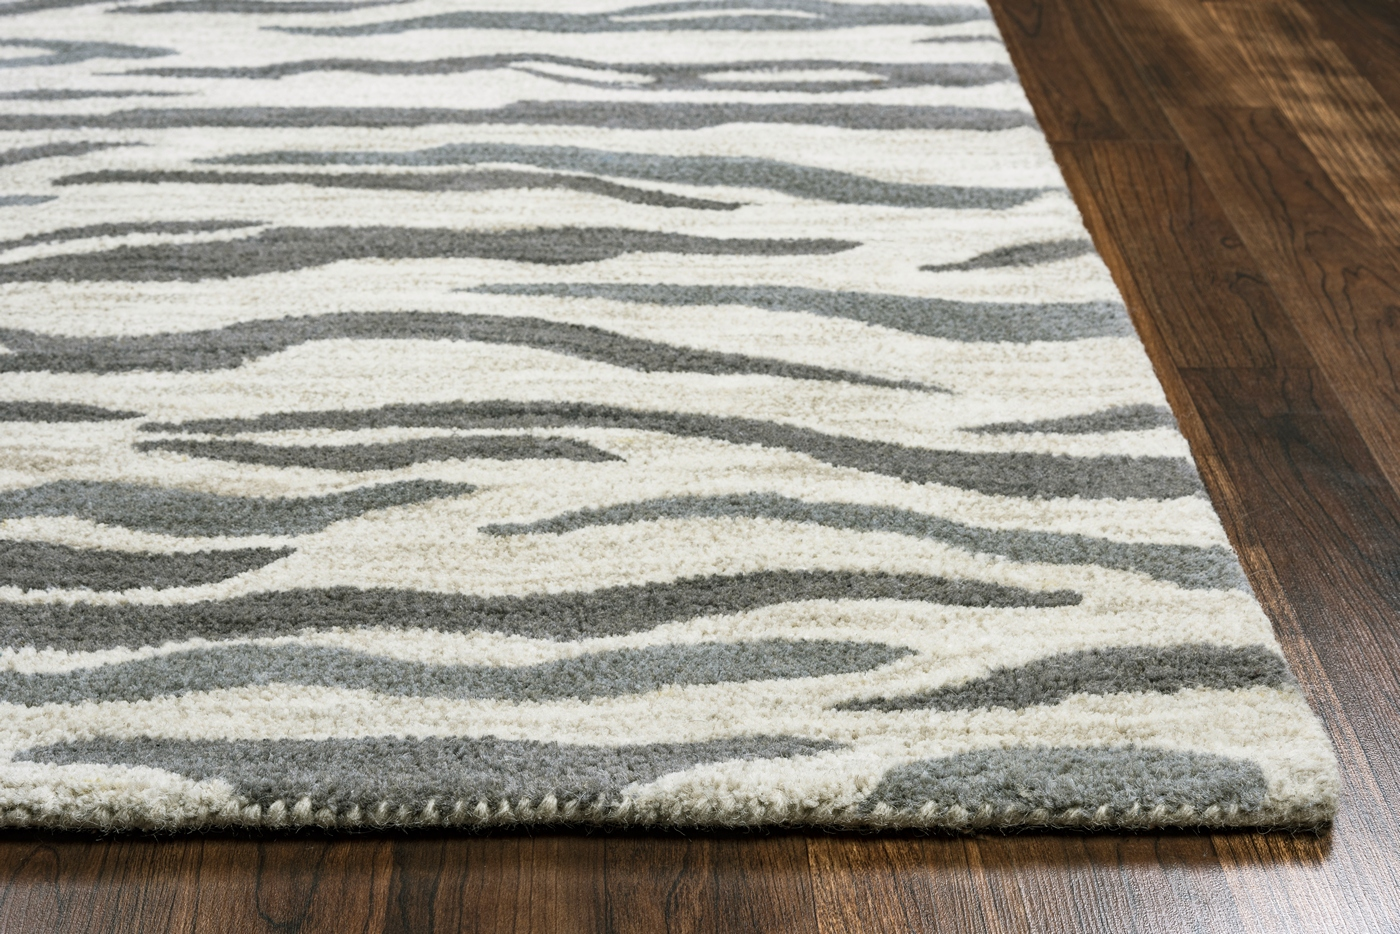 8 215 10 Home Design Blue Area Rug 8x10 Designs Wool